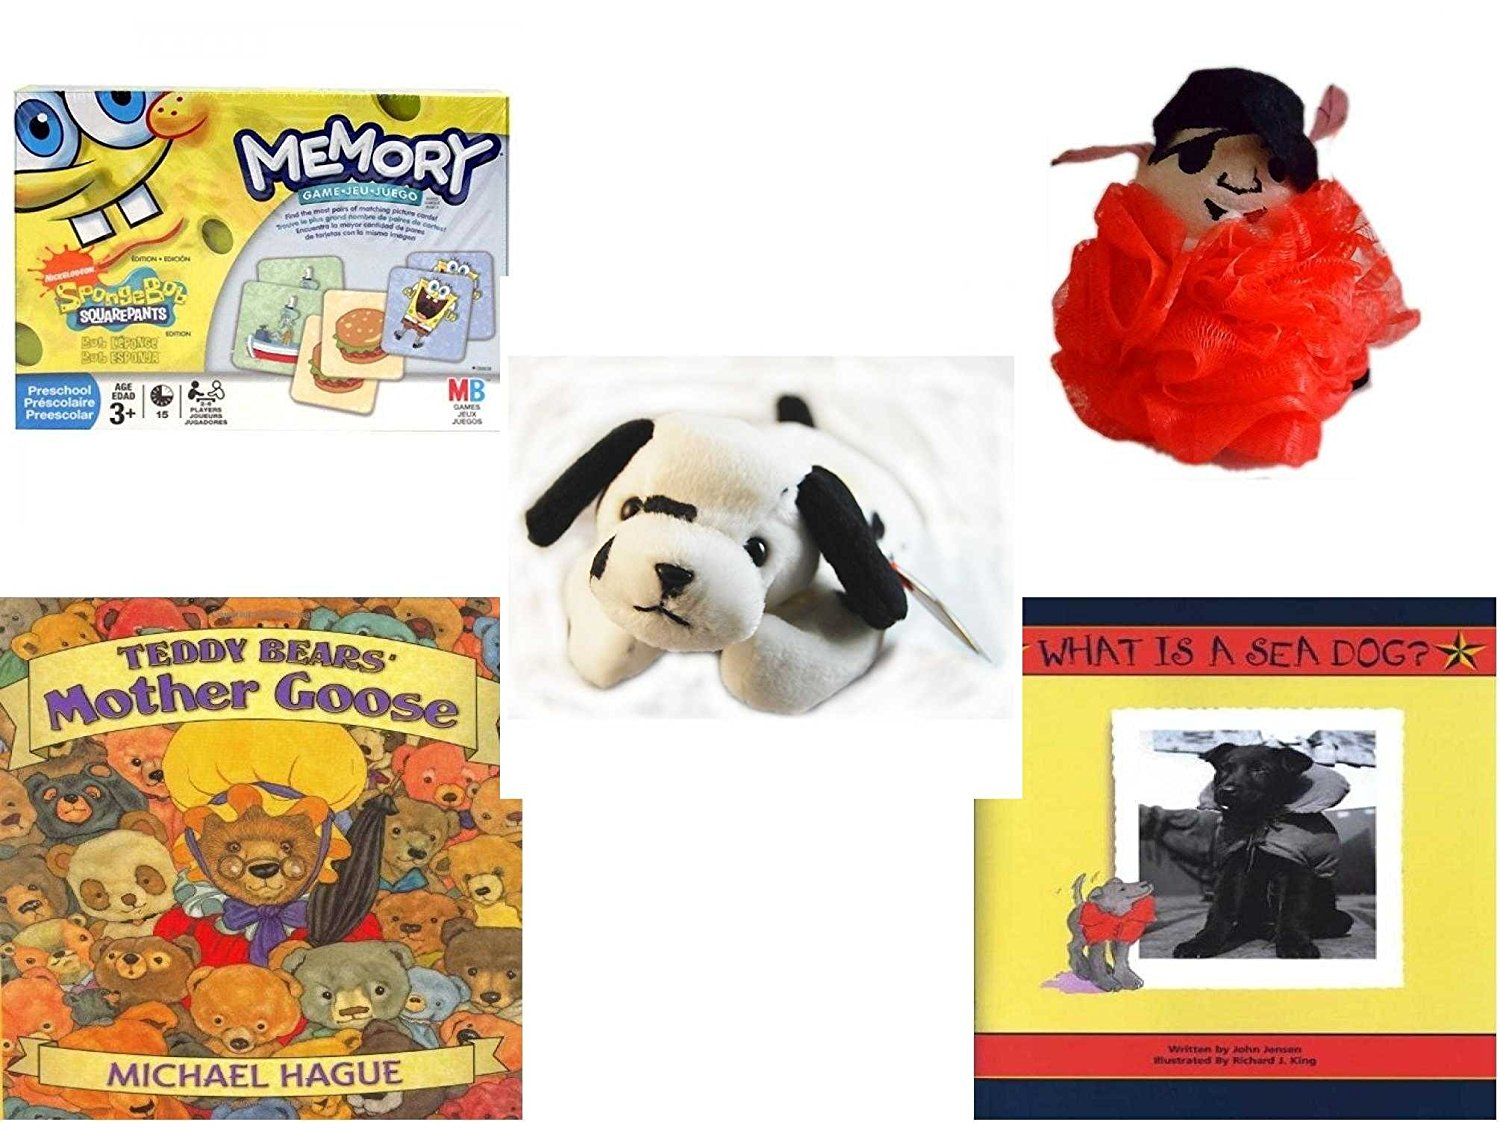 Children's Gift Bundle - Ages 3-5 [5 Piece] - SpongeBob SquarePants Memory Game - The Wiggles Captain Feathersword Net Bath Sponge - Ty Beanie Babies - Dotty the Dalmatian Dog - Teddy Bears' Mother